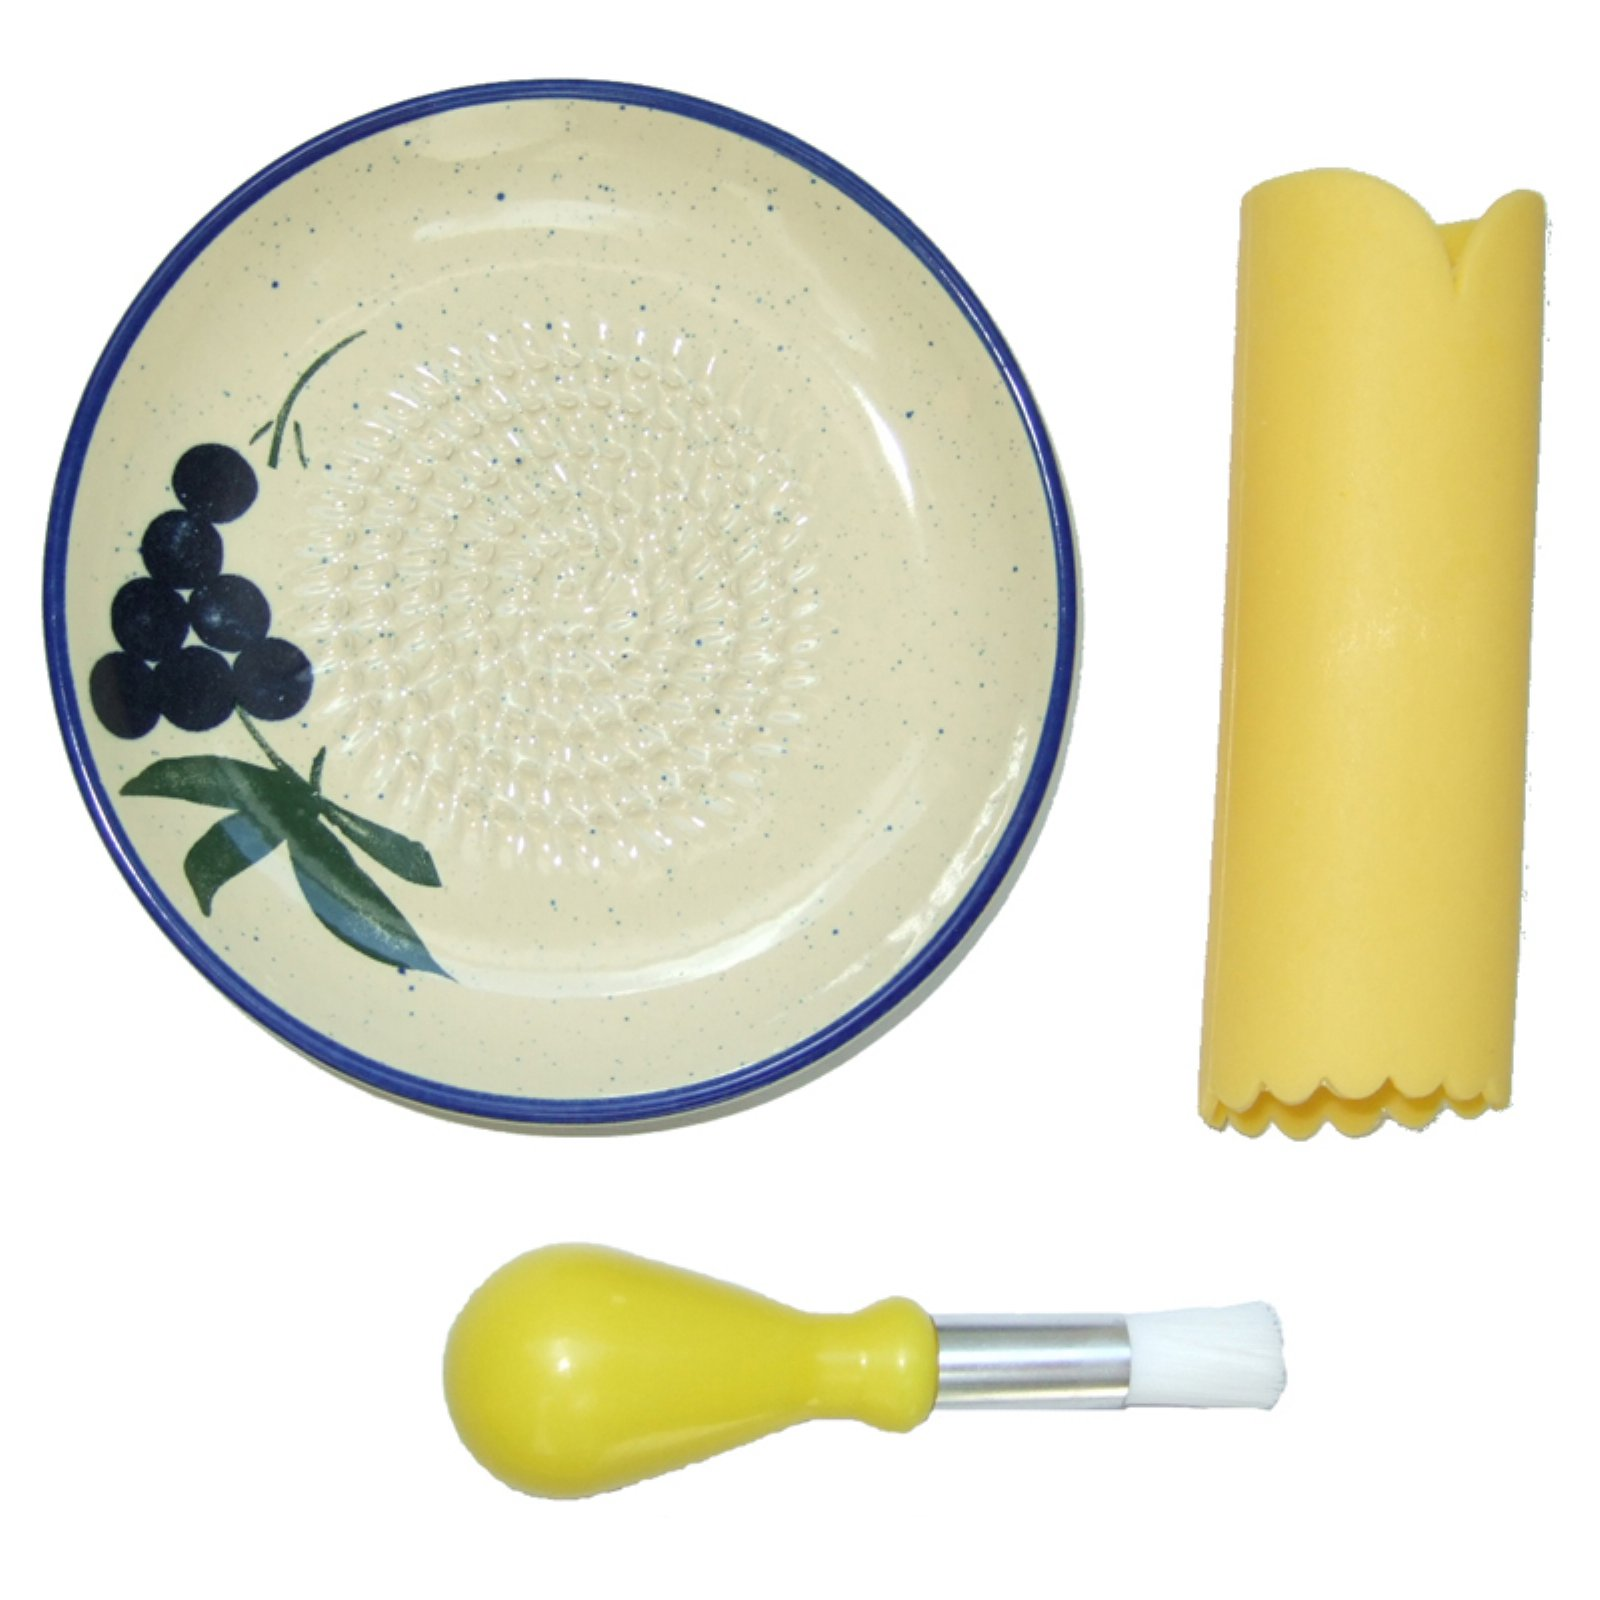 Cooks Innovations Ceramic Grater Plate 3 Piece Set - Grater, Peeler, & Brush - Beautiful Grape Design - Blue & Cream